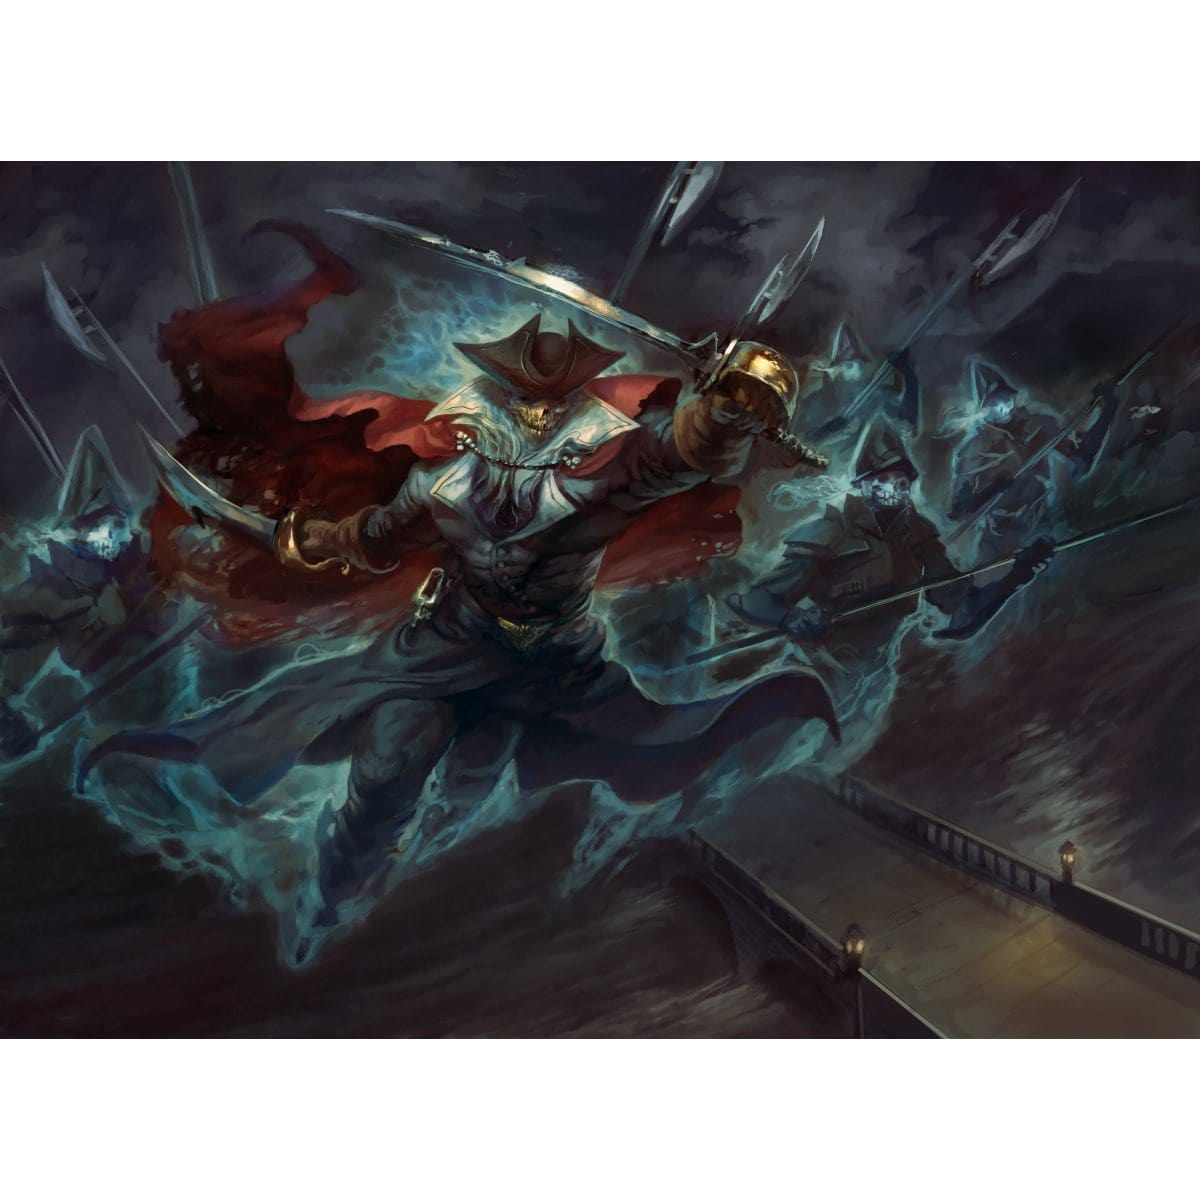 Drogskol Captain Print - Print - Original Magic Art - Accessories for Magic the Gathering and other card games